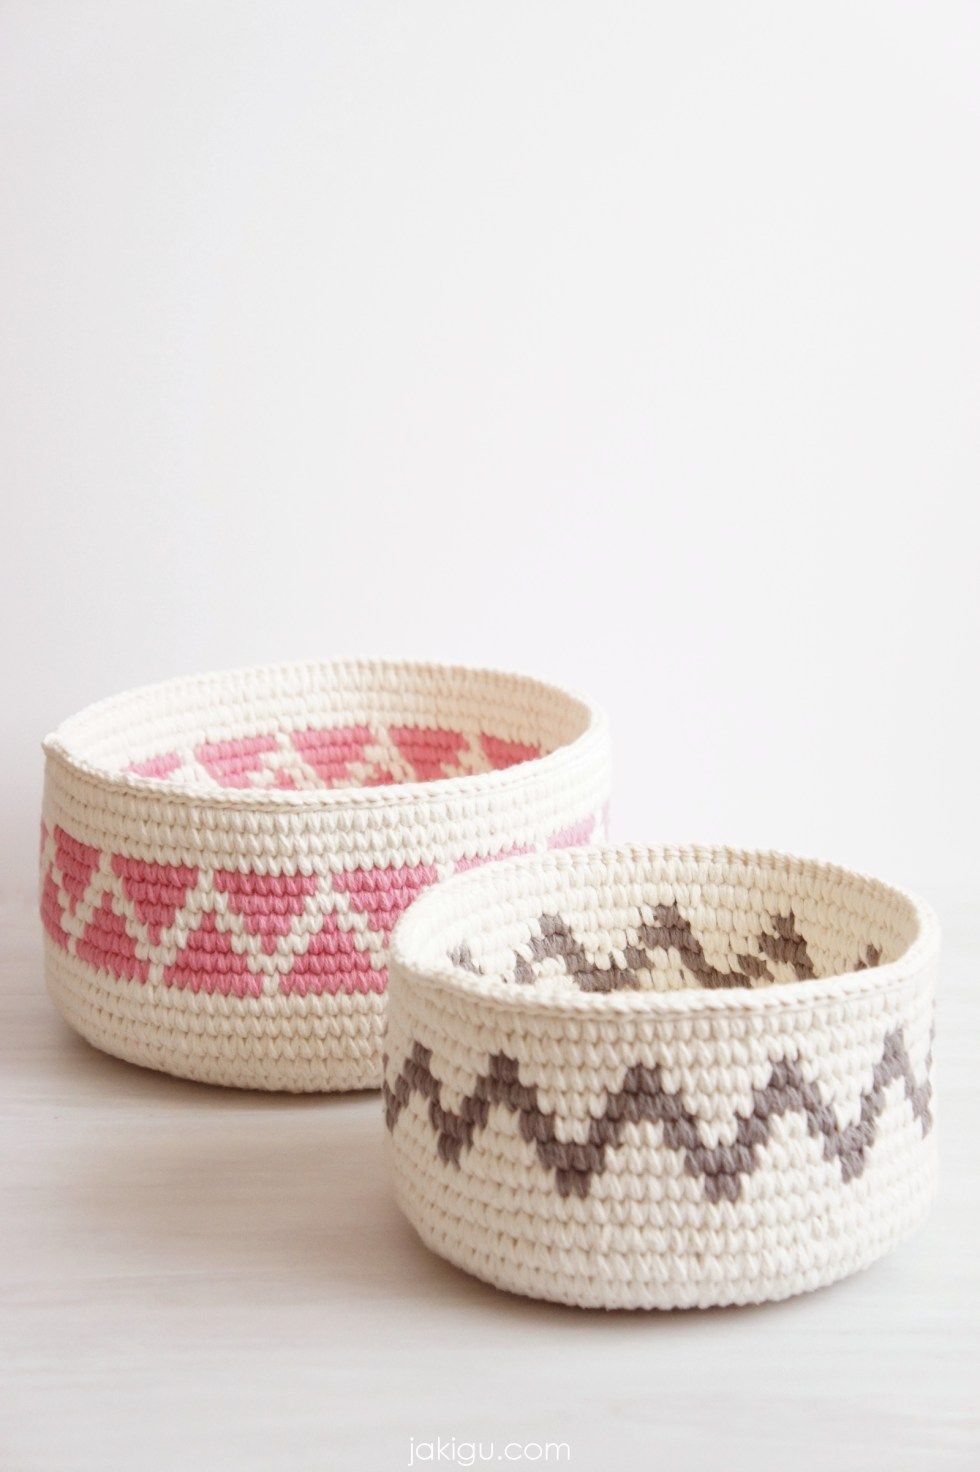 Geometric crochet baskets / Crochet triangles and chevron / Sturdy ...